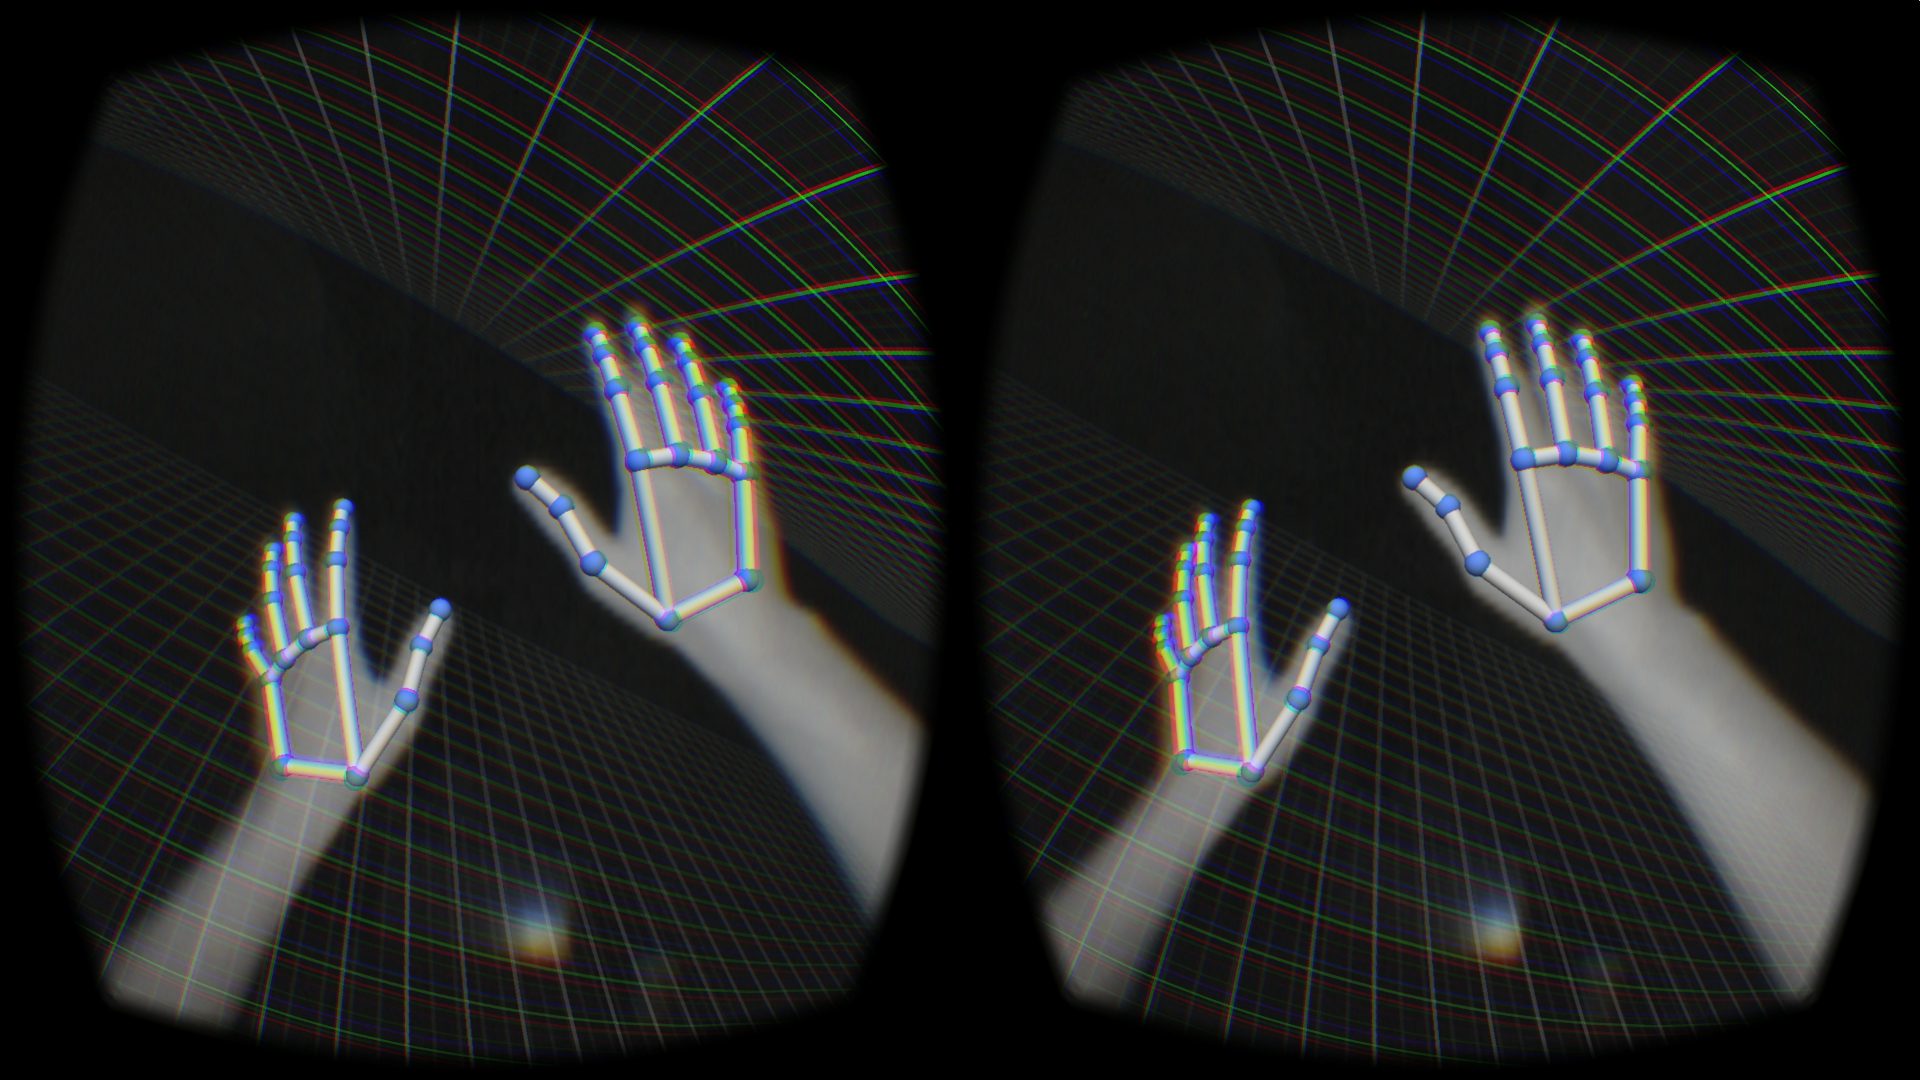 leap-motion-ar-overlay-3